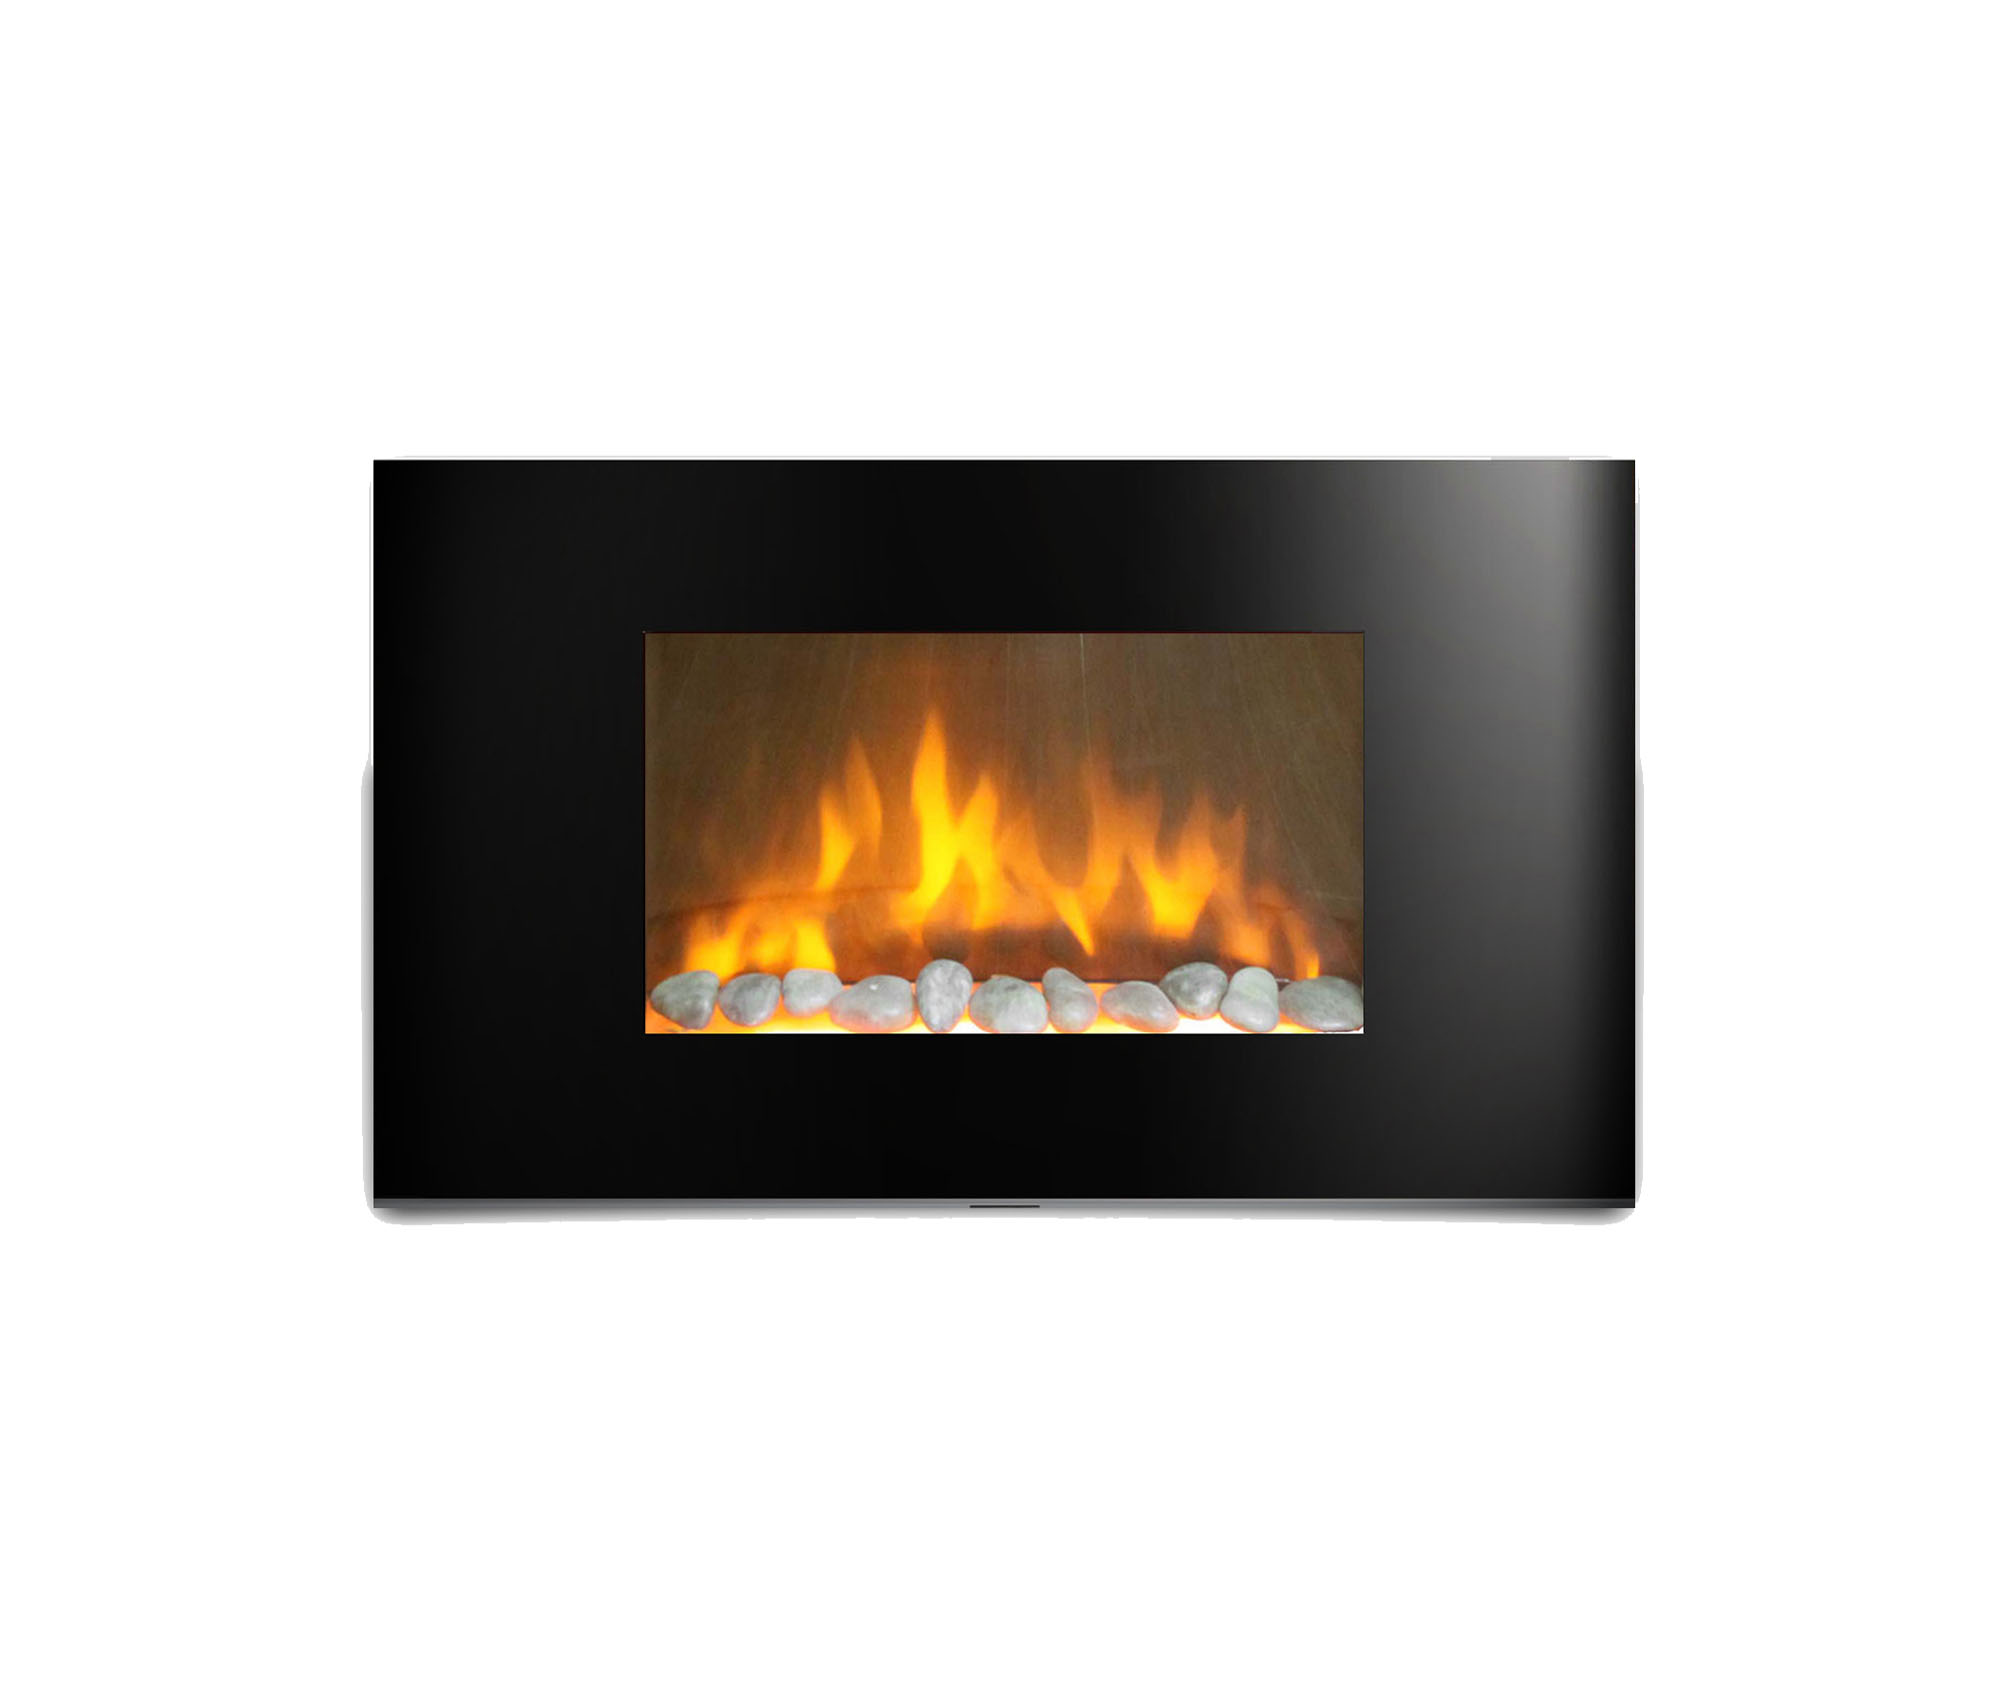 Ambionair flame led wall mounted fireplace ef 1510 bp home market deals - Fire place walls ...